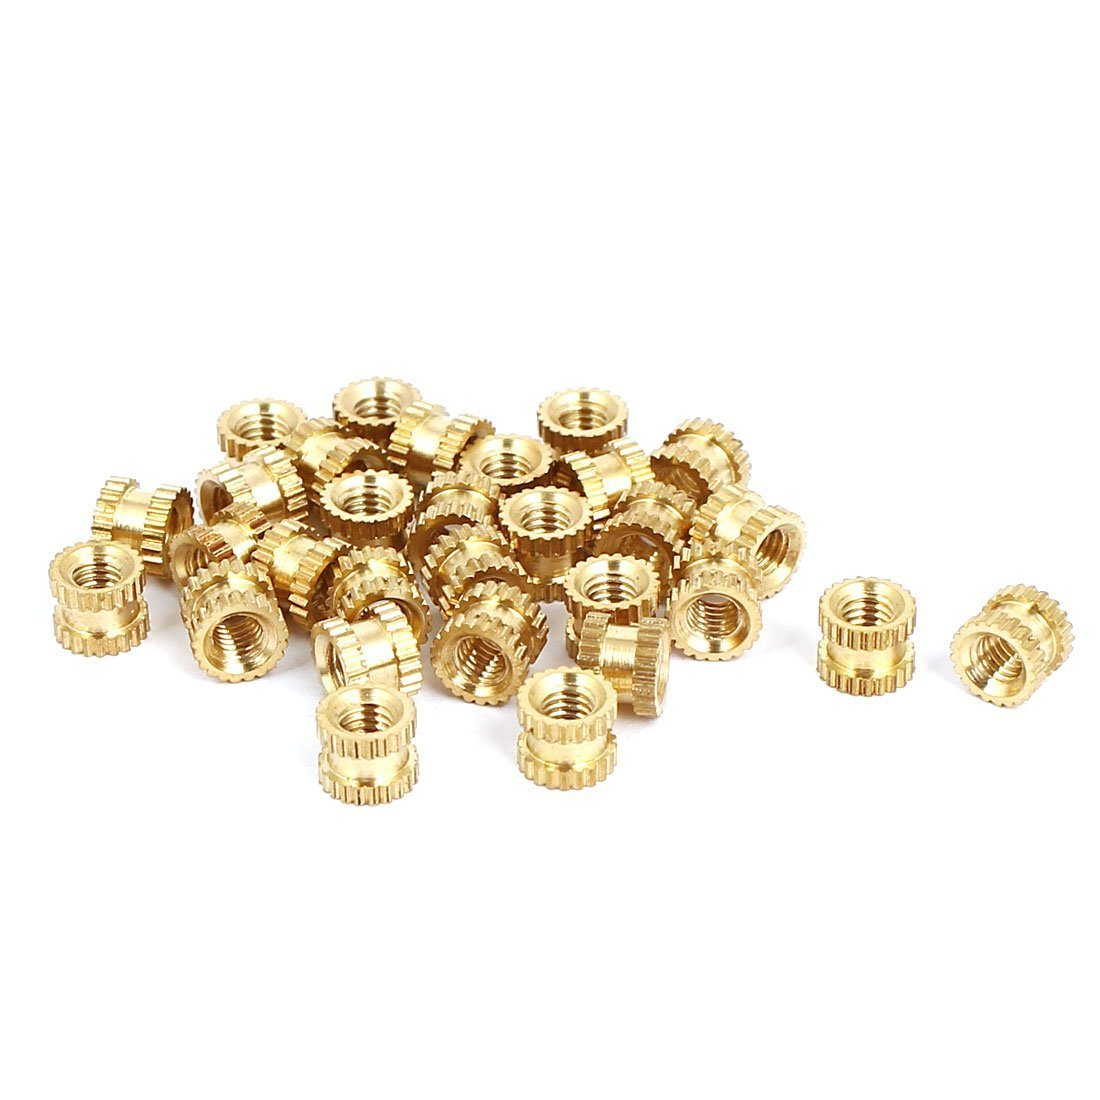 Nrpfell M2x3mmx3.2mm Female Threaded Brass Knurled Insert Embedded Nuts 20pcs